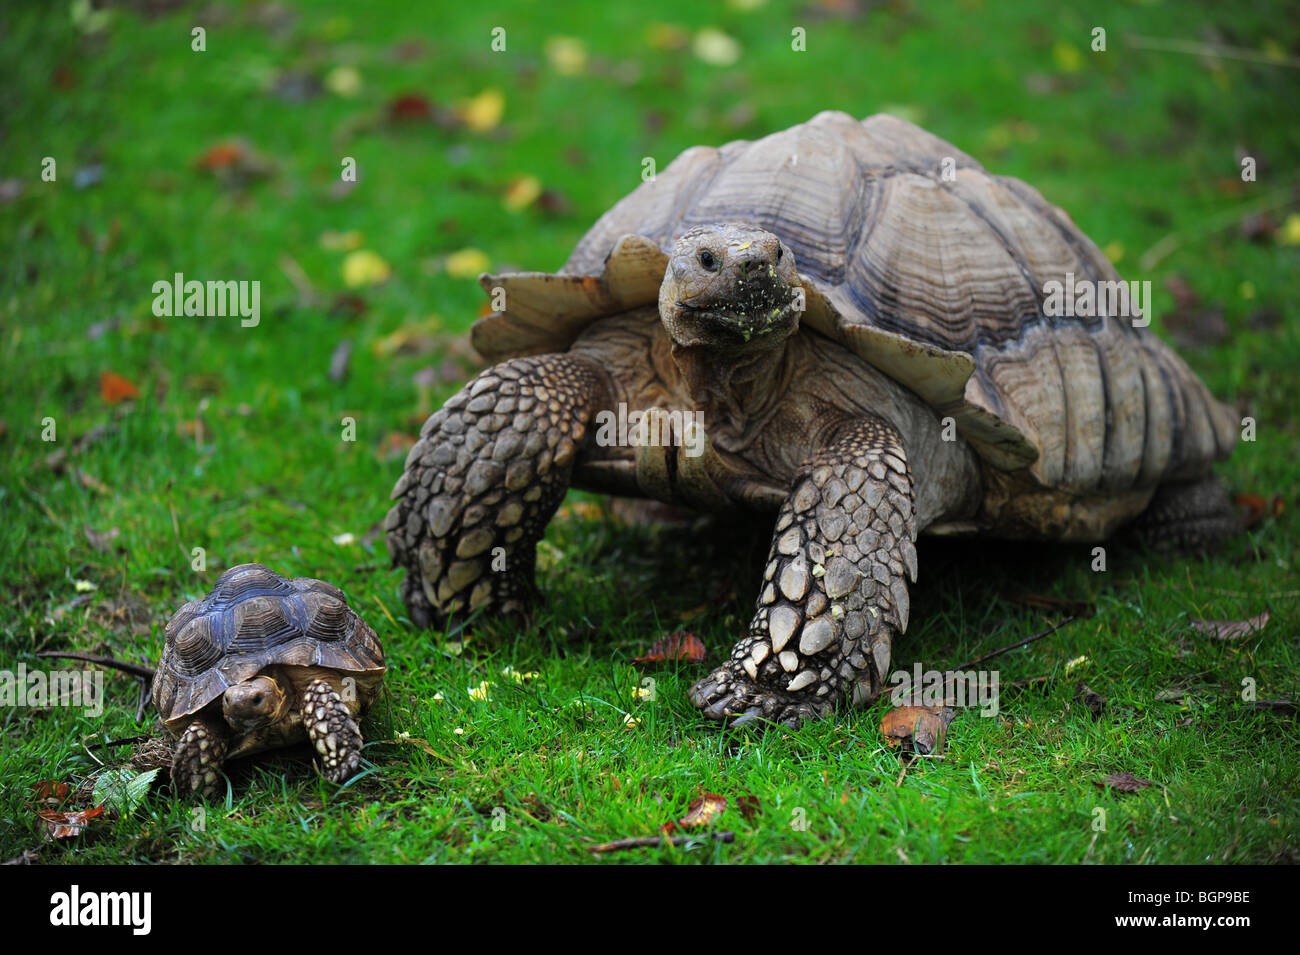 a very large big pet tortoise sitting next to a very small tortoise in a garden in Cornwall. - Stock Image